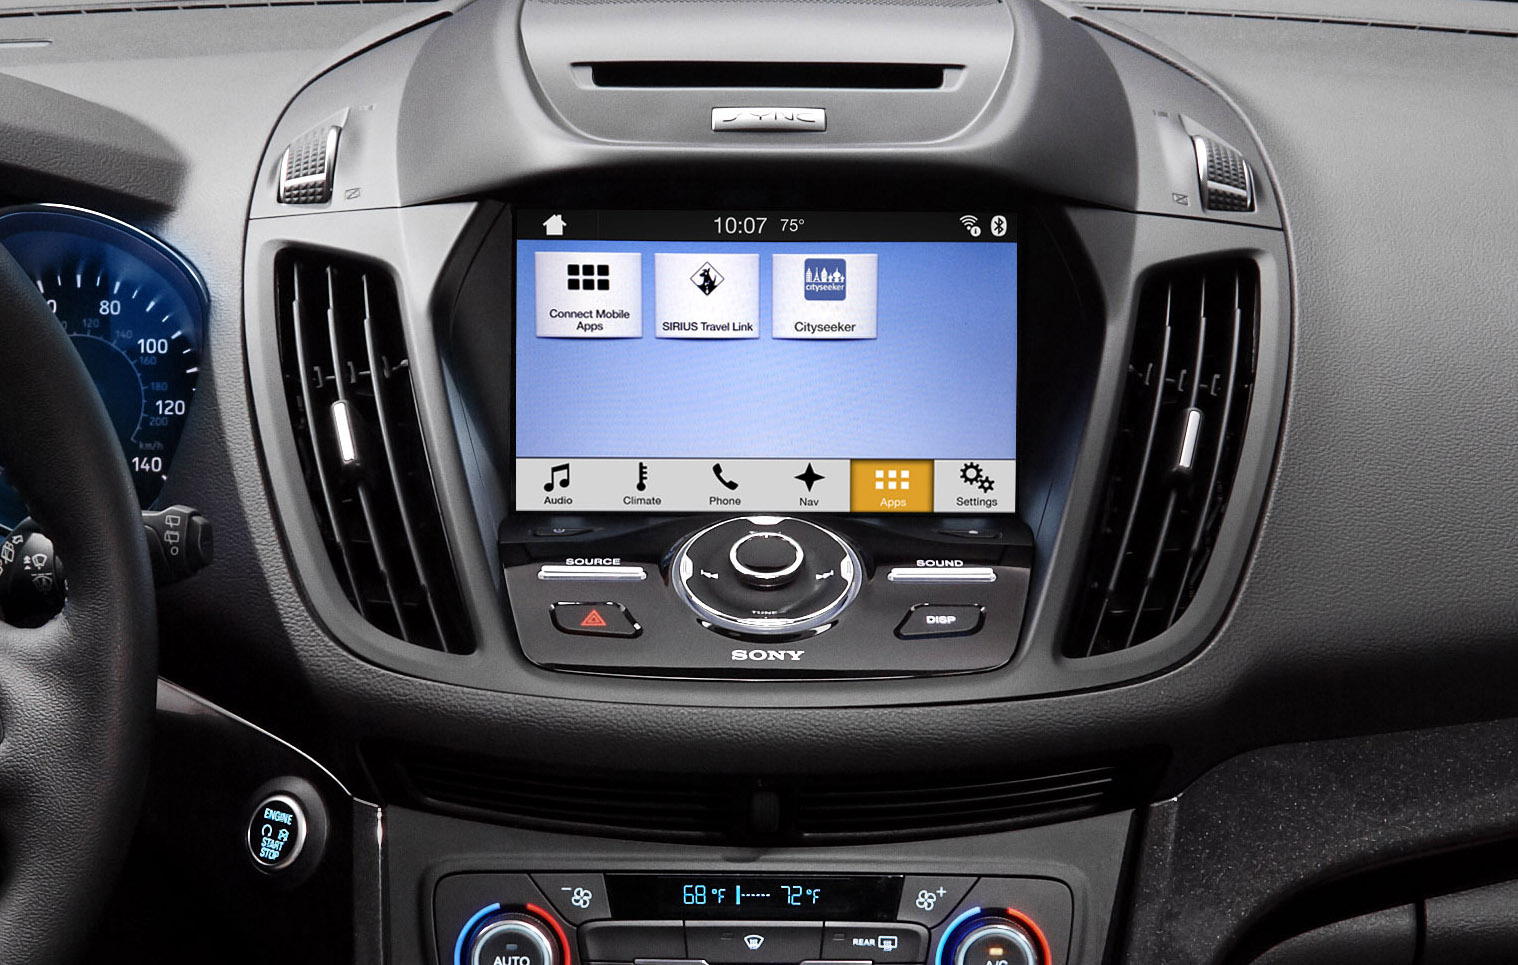 ford 39 s sync 3 infotainment system adds apple carplay and android auto new apps also in the mix. Black Bedroom Furniture Sets. Home Design Ideas